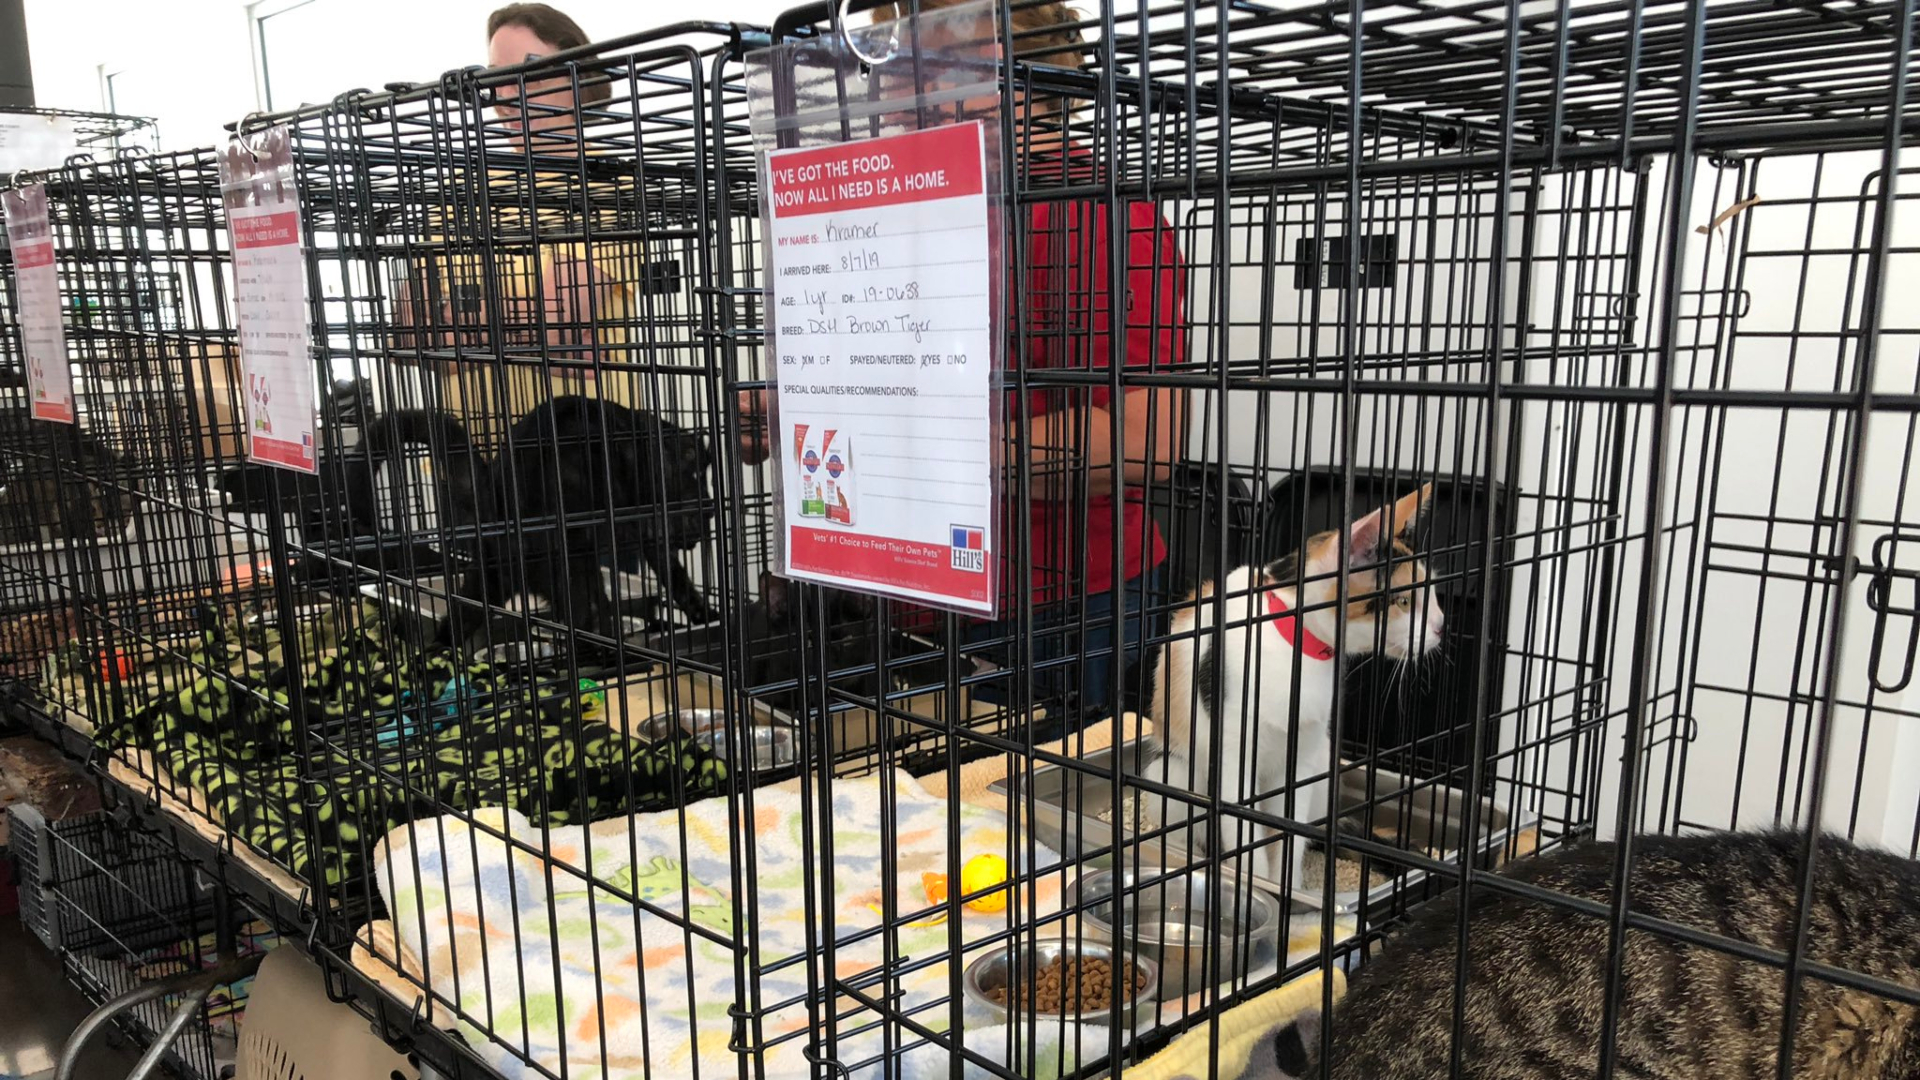 Fair Offers Chance to Adopt Pets